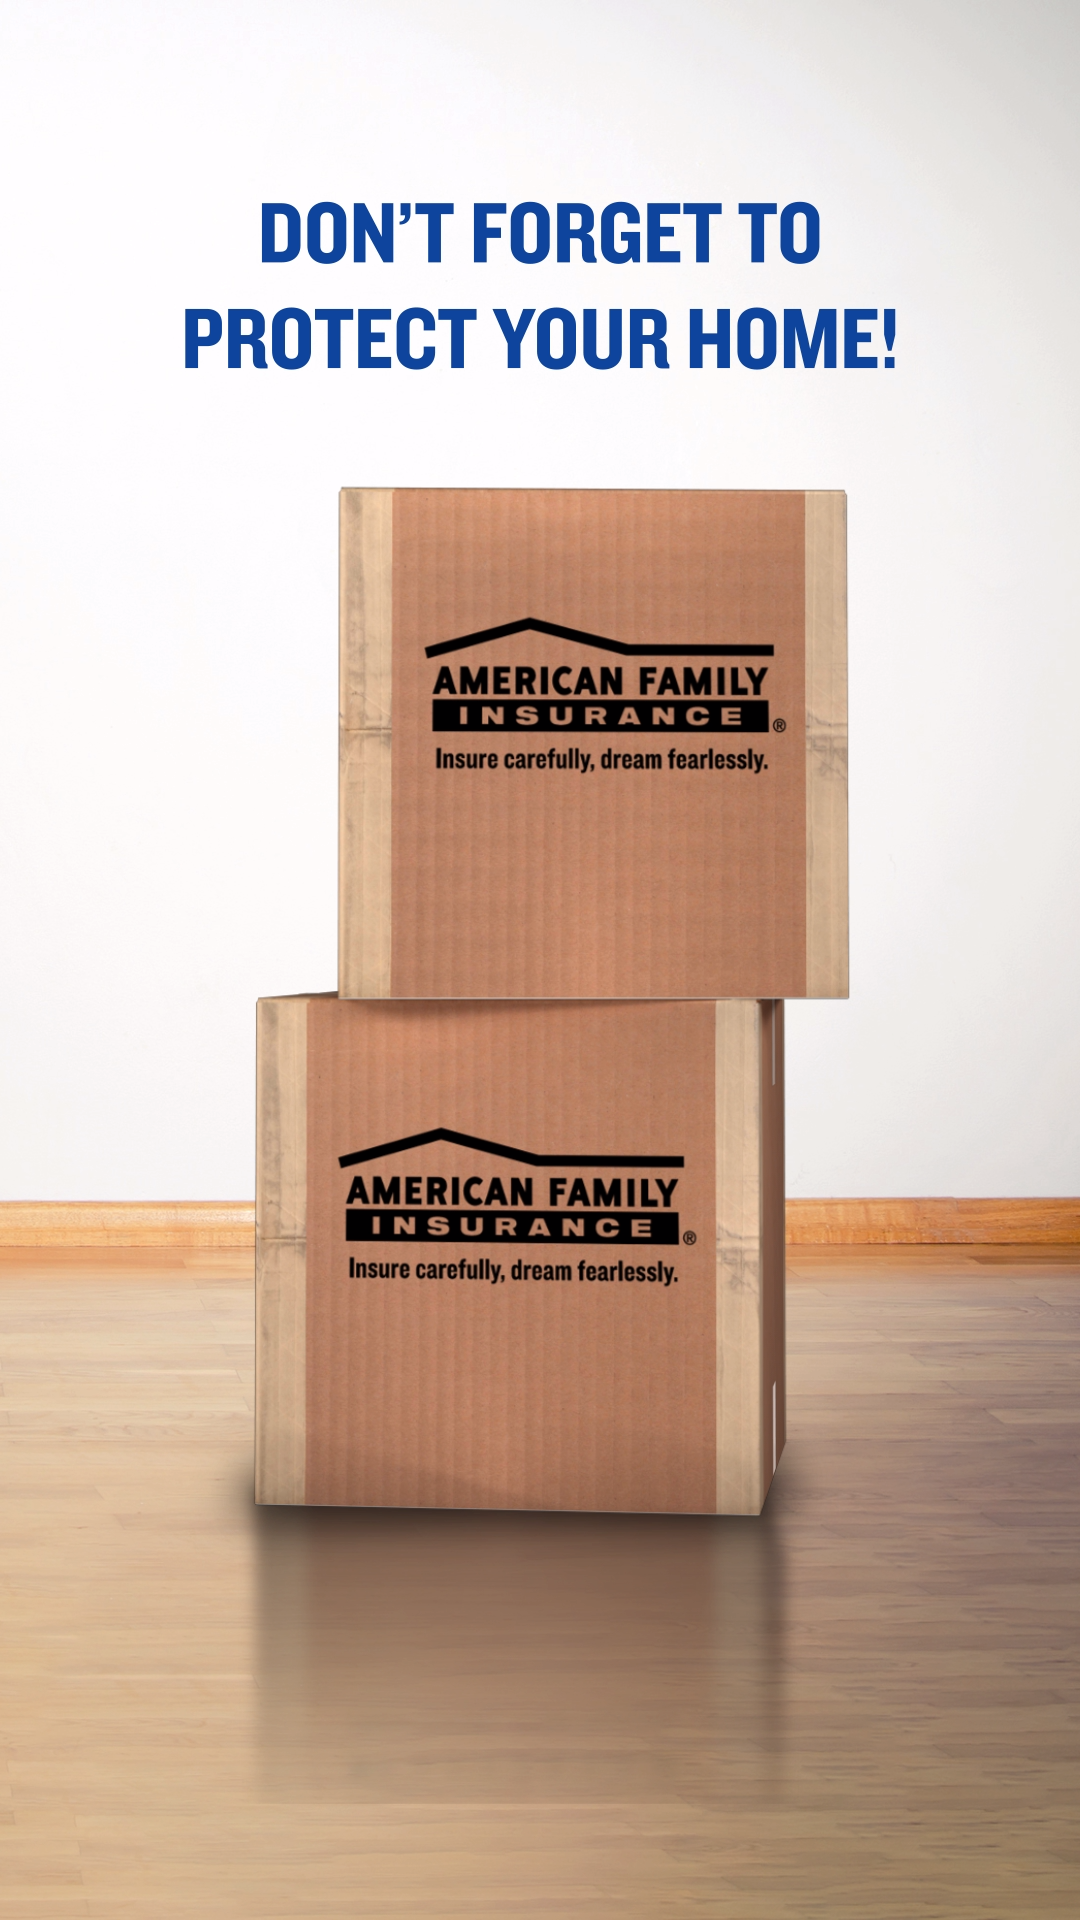 You've worked hard for your new home. Let us help protect